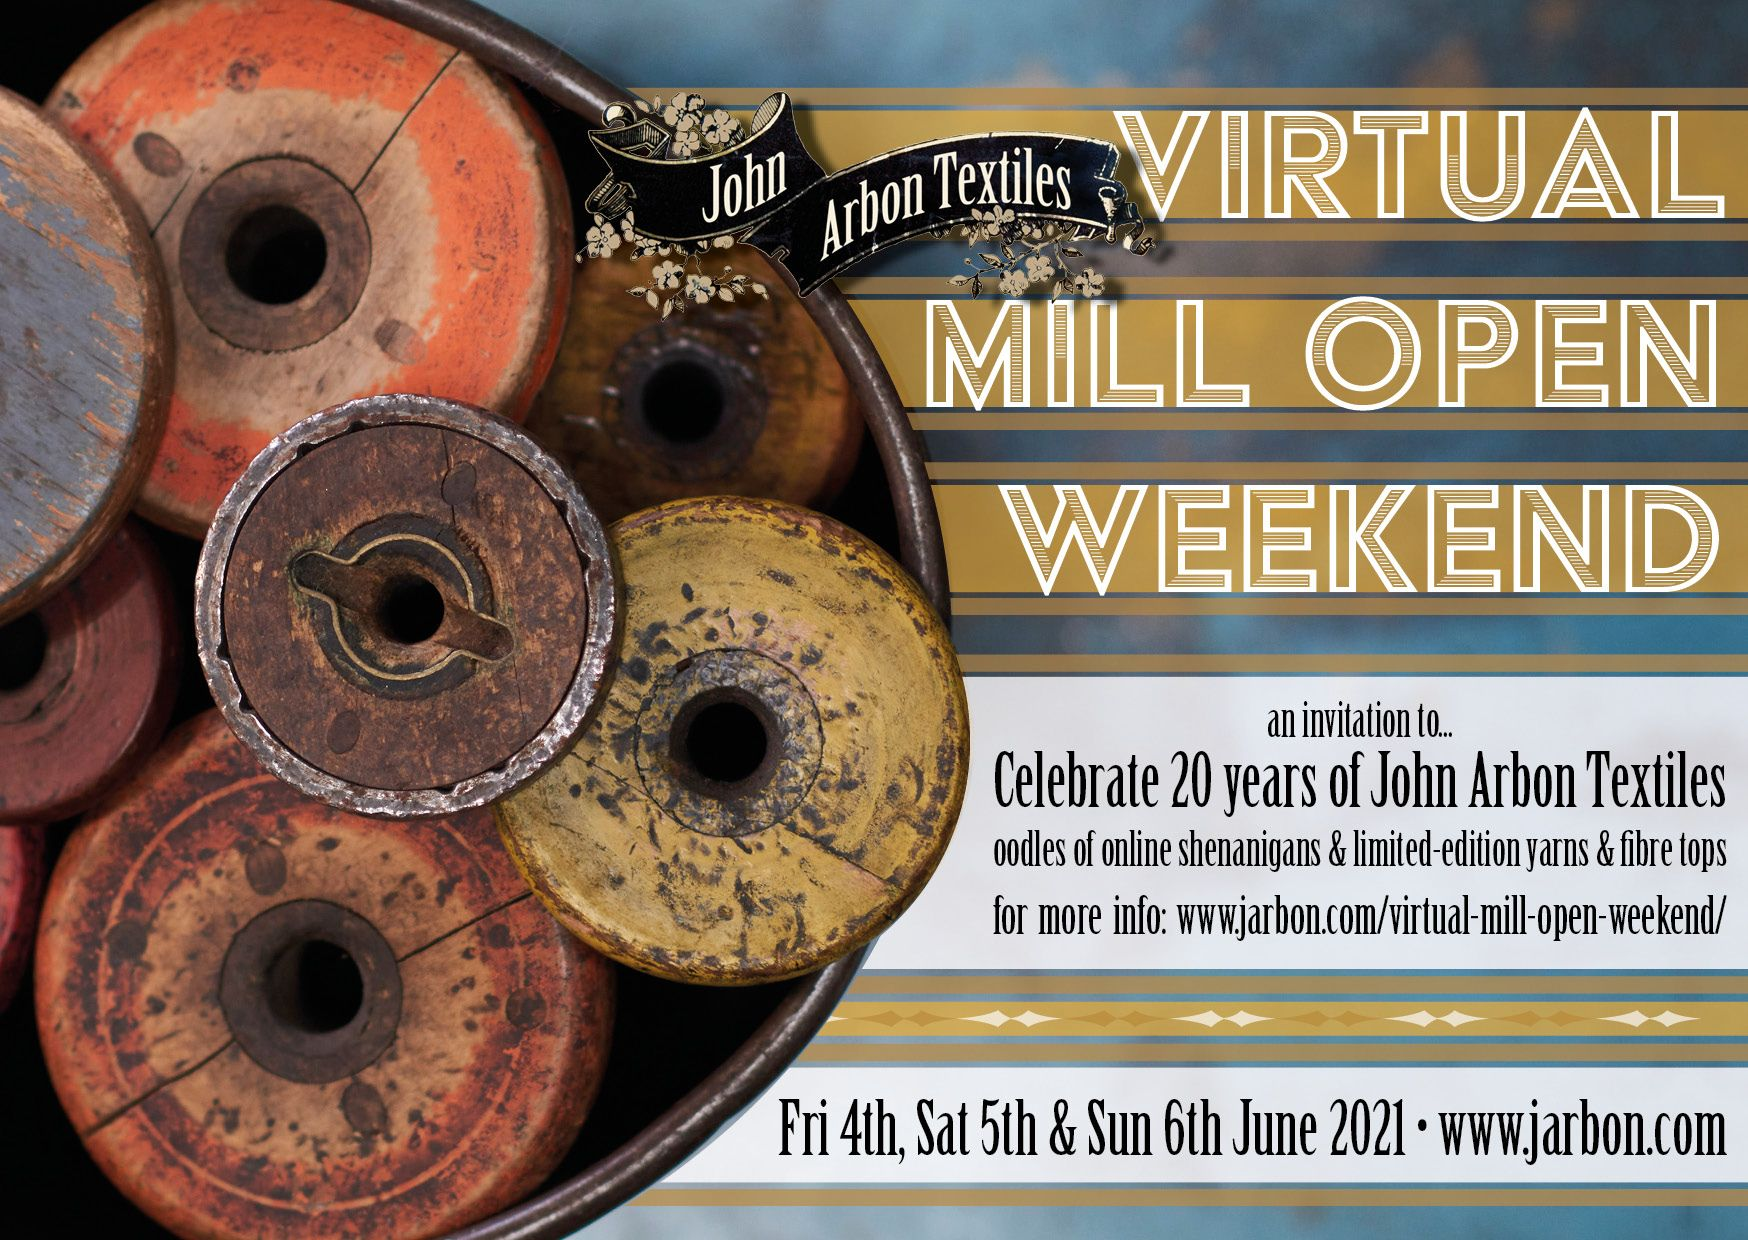 Picture of Yarn spools next to text discussion the Virtual Mill Open weekend